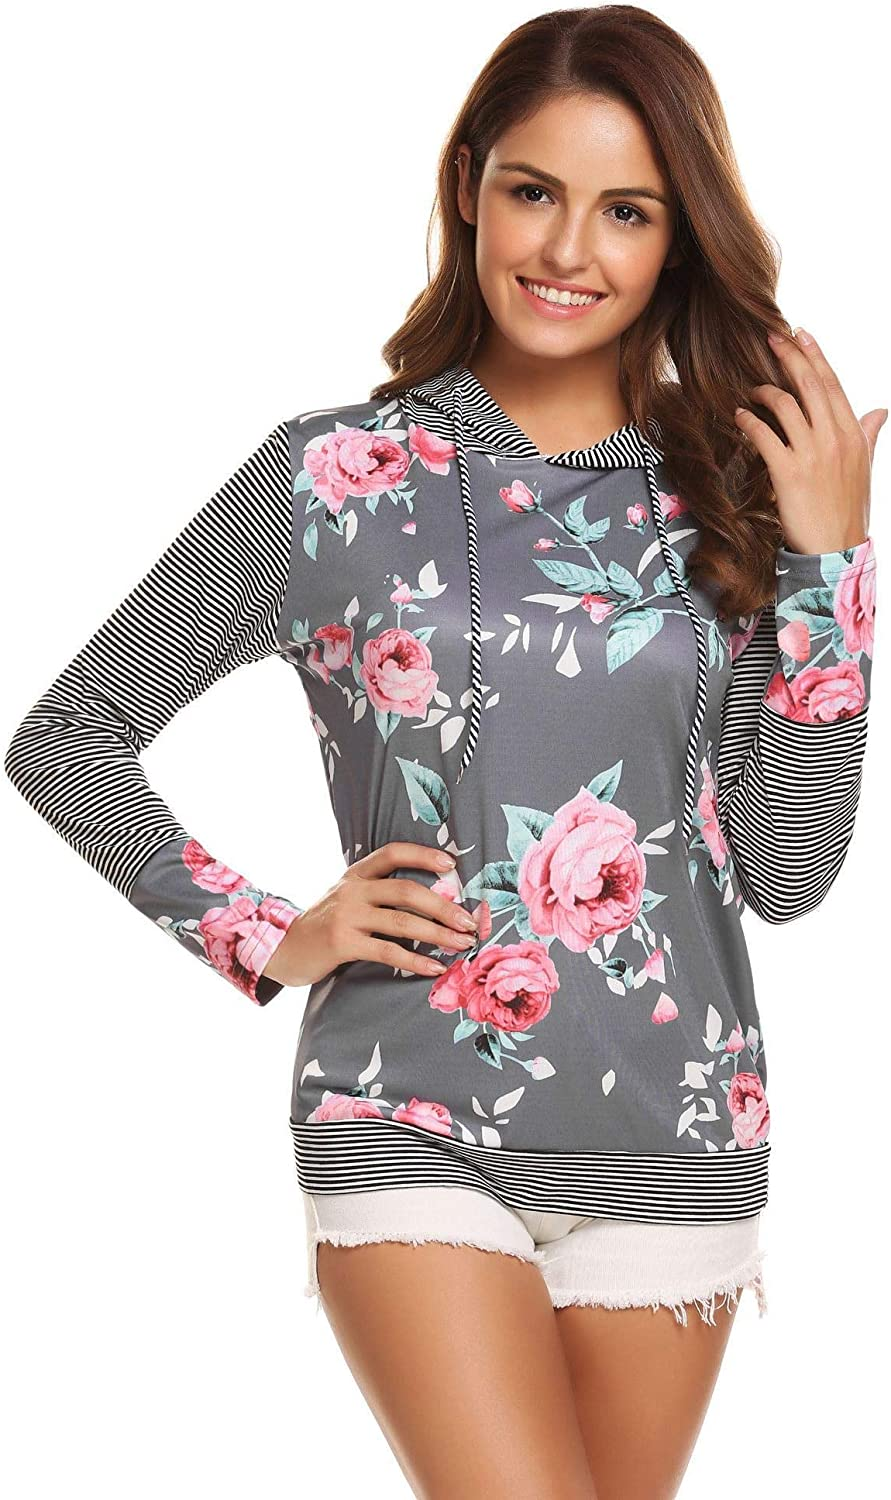 Sexyfree Womens Casual Floral Print Striped Long Sleeve Drawstring Hoodie Pullover Sweatshirt with Pockets S-XXL